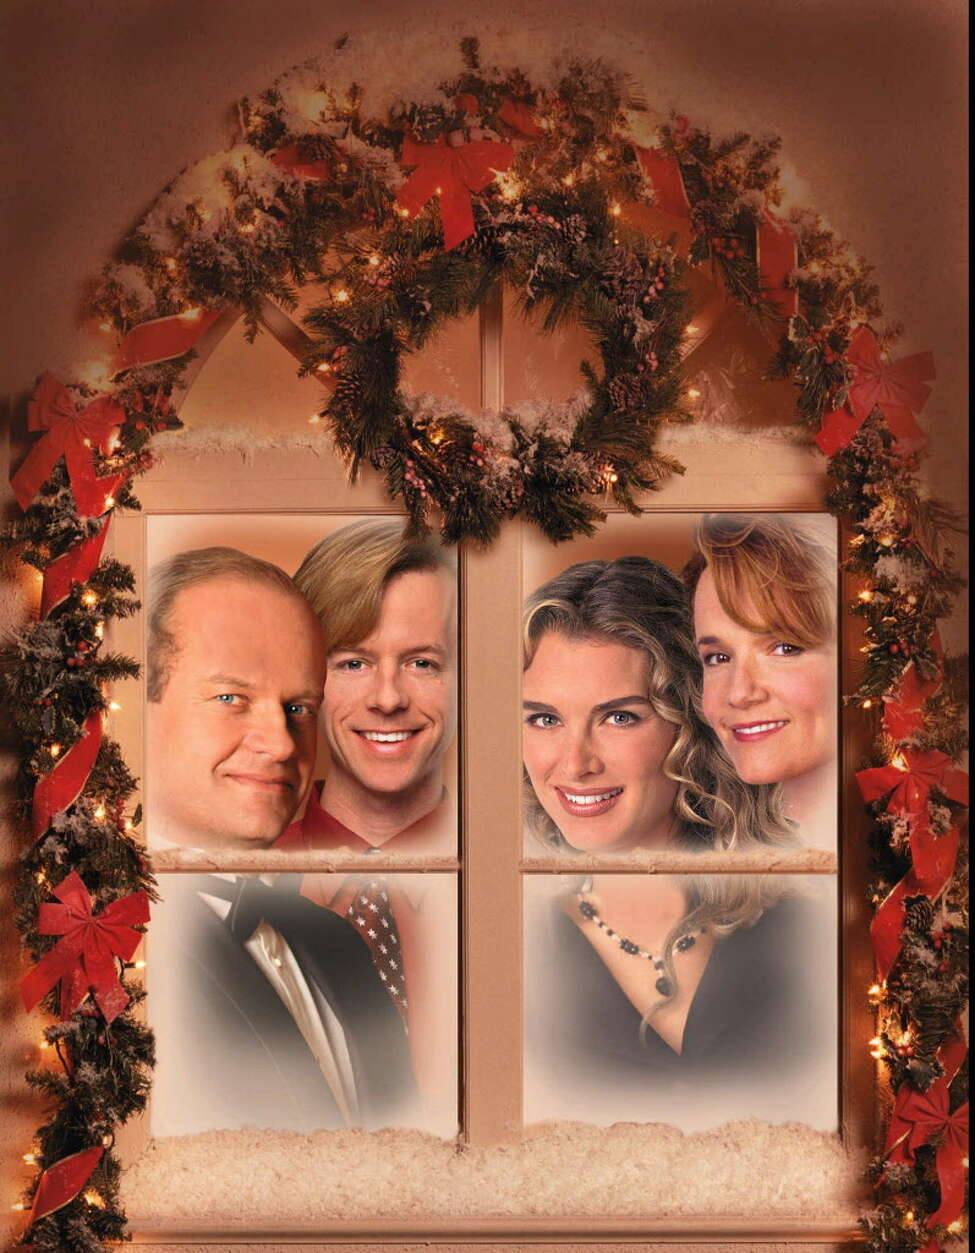 """Click through the slideshow to see how some popular 1990s shows marked the holidays . Must-See TV stars from 1997 – Kelsey Grammer, David Spade, Brooke Shields, Lea Thompson appear in special Christmas episodes of """"Frasier"""" (Grammer), """"Just Shoot Me"""" (Spade), """"Caroline in the City"""" (Thompson) and """"Suddenly Susan"""" (Shields)."""